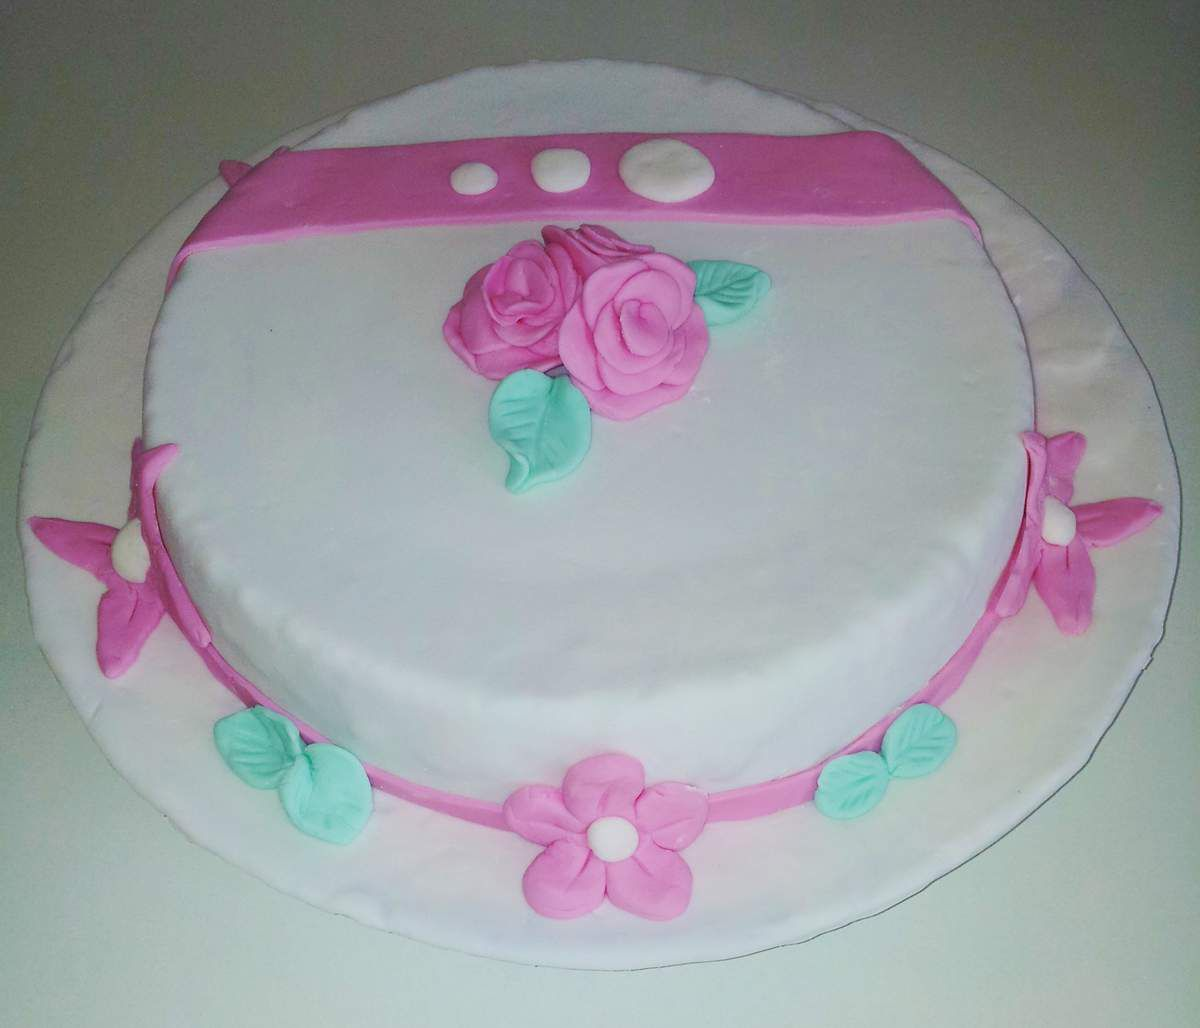 Idee decoration gateau anniversaire fille id es de for Decoration 1 an fille